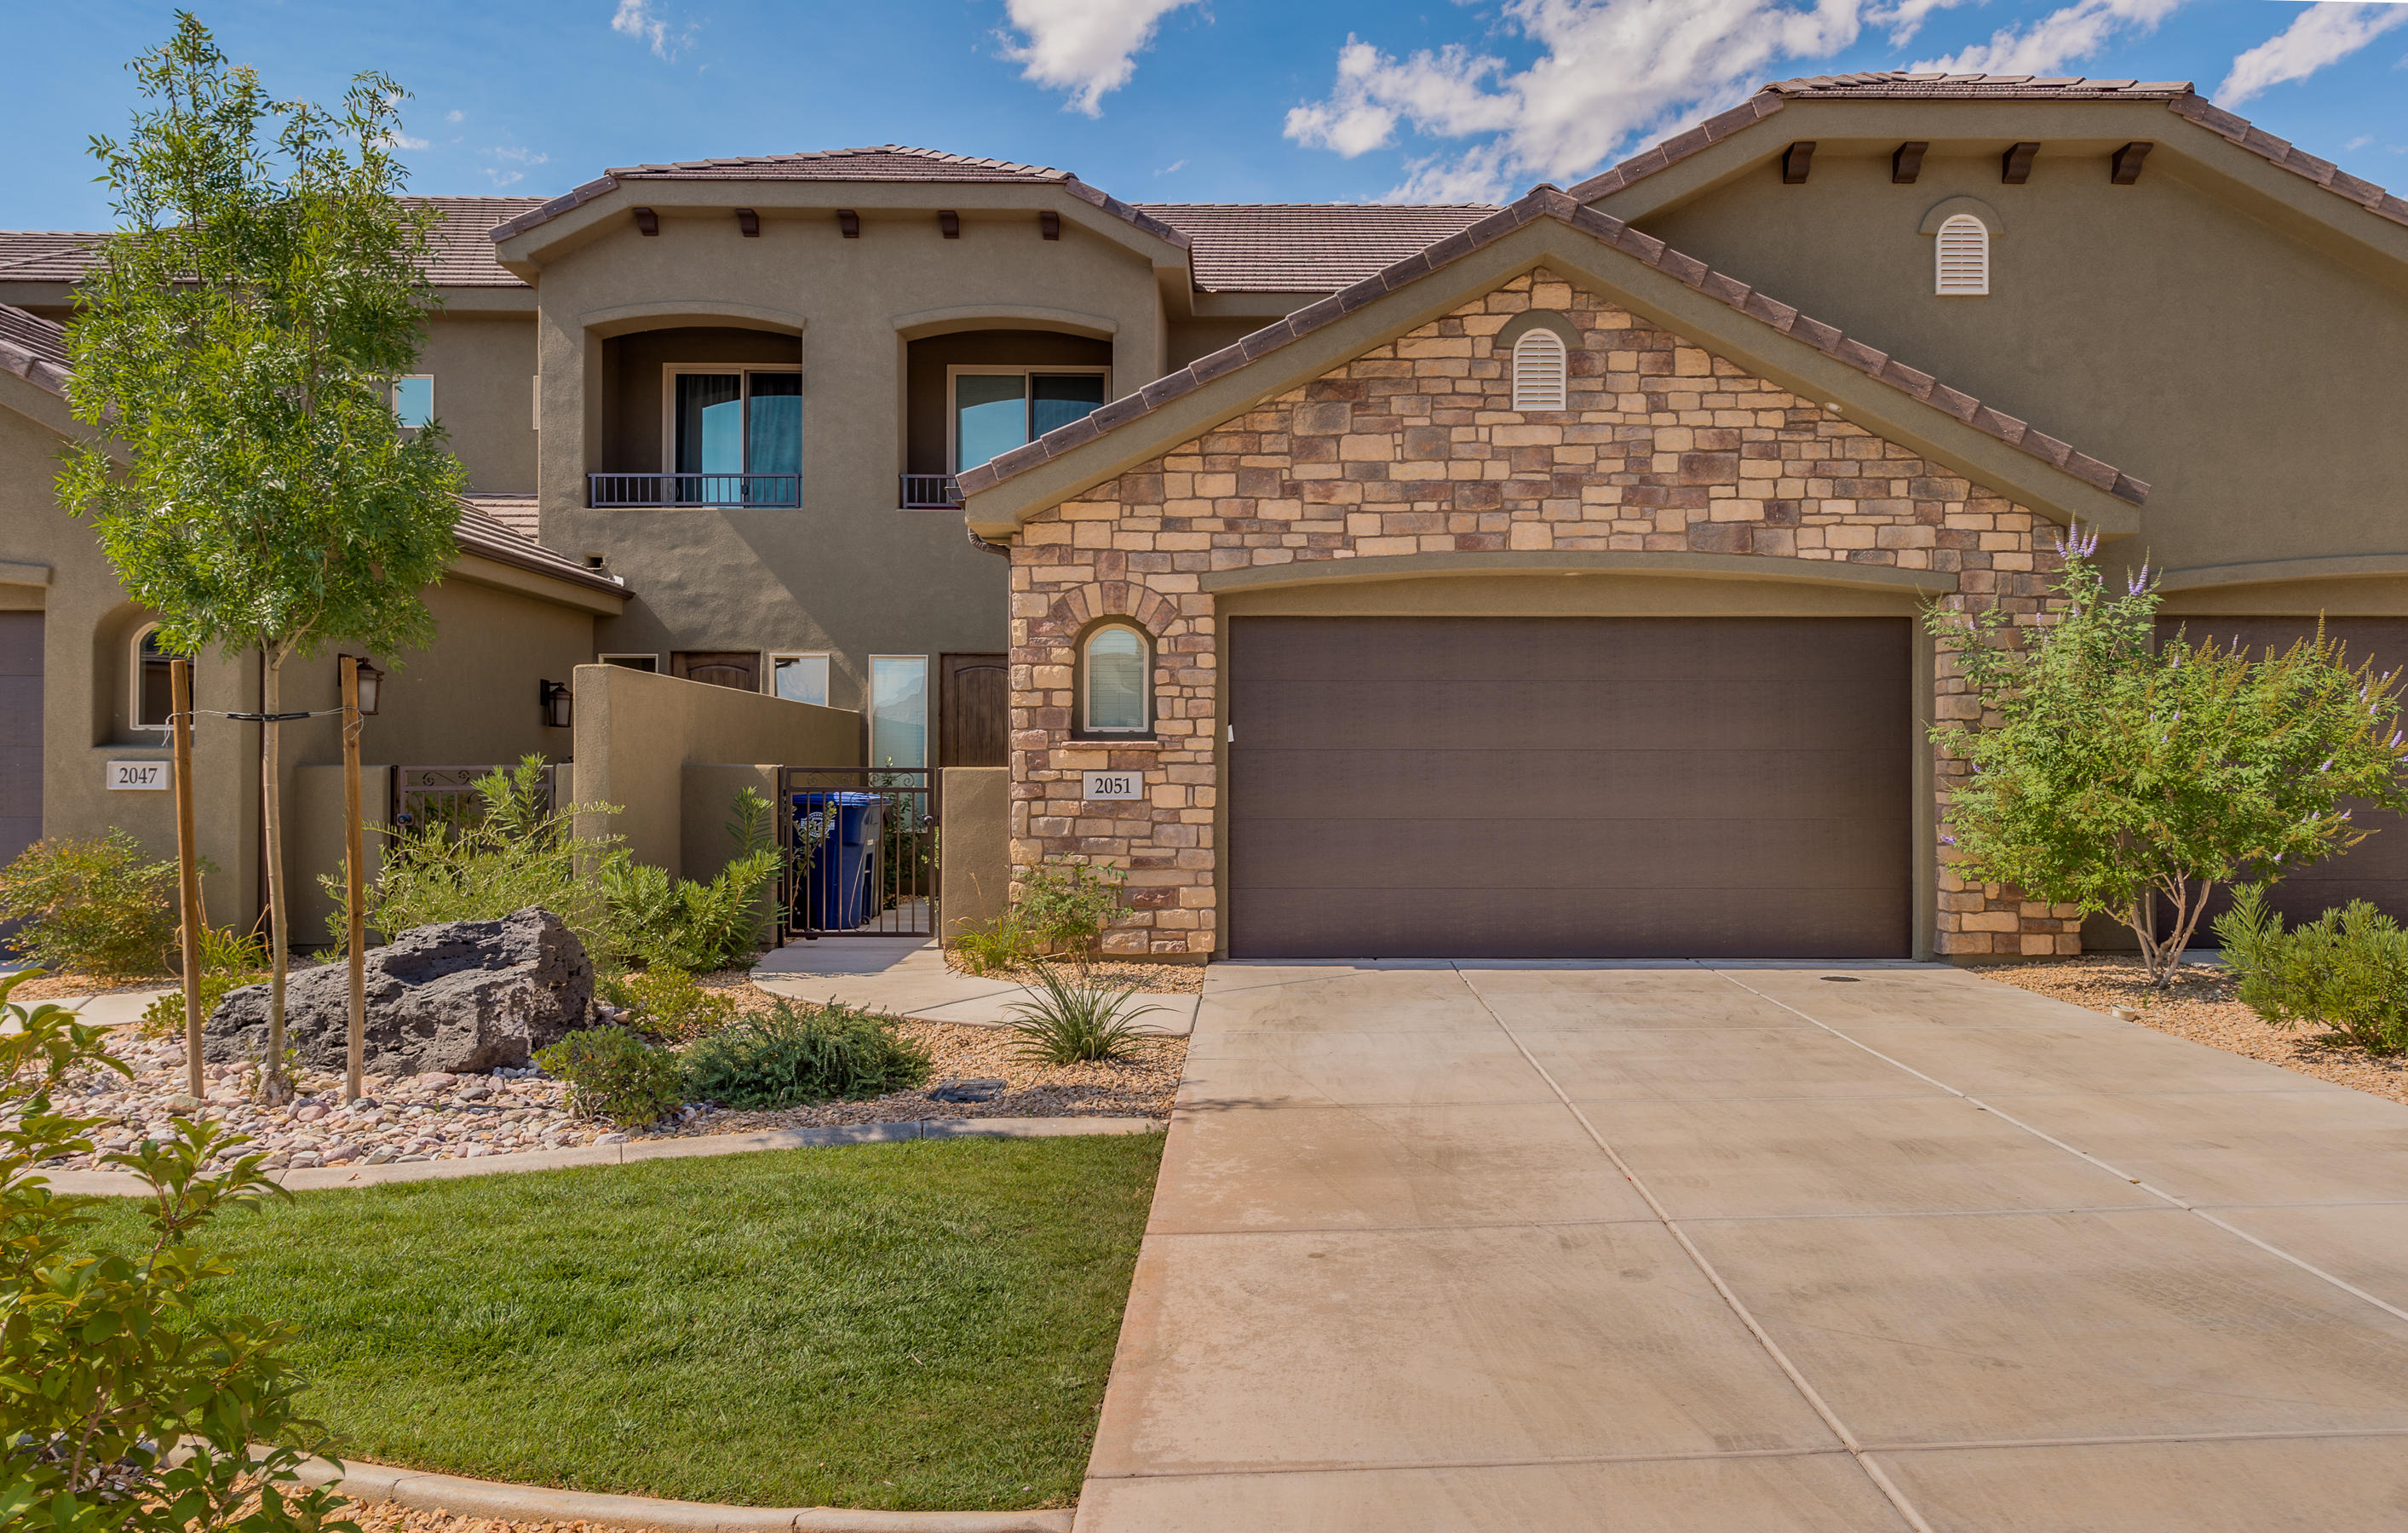 86292 2051 PEBBLE BEACH DR Washington UT